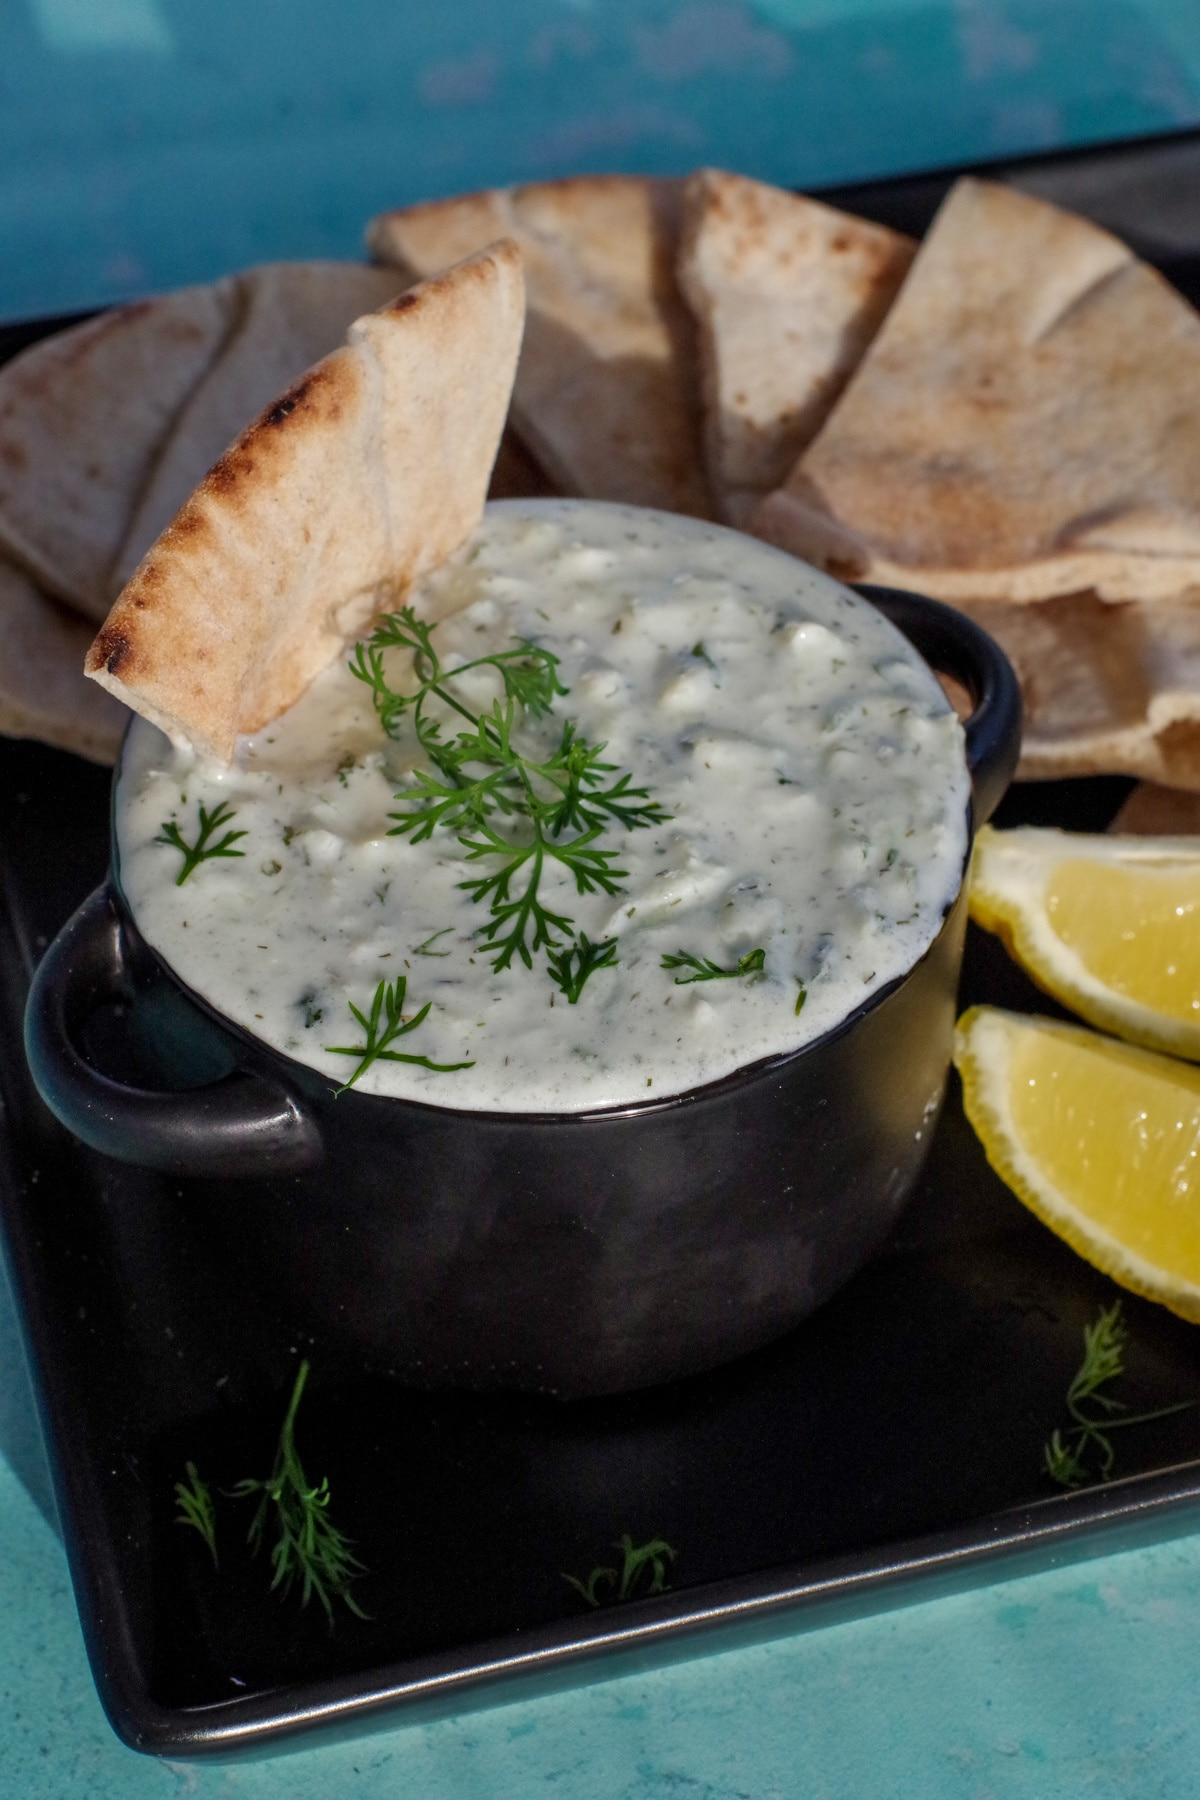 triangle of pita bread being dipped into tzatziki sauce in black bowl on black tray with pita bread in background and lemon wedges